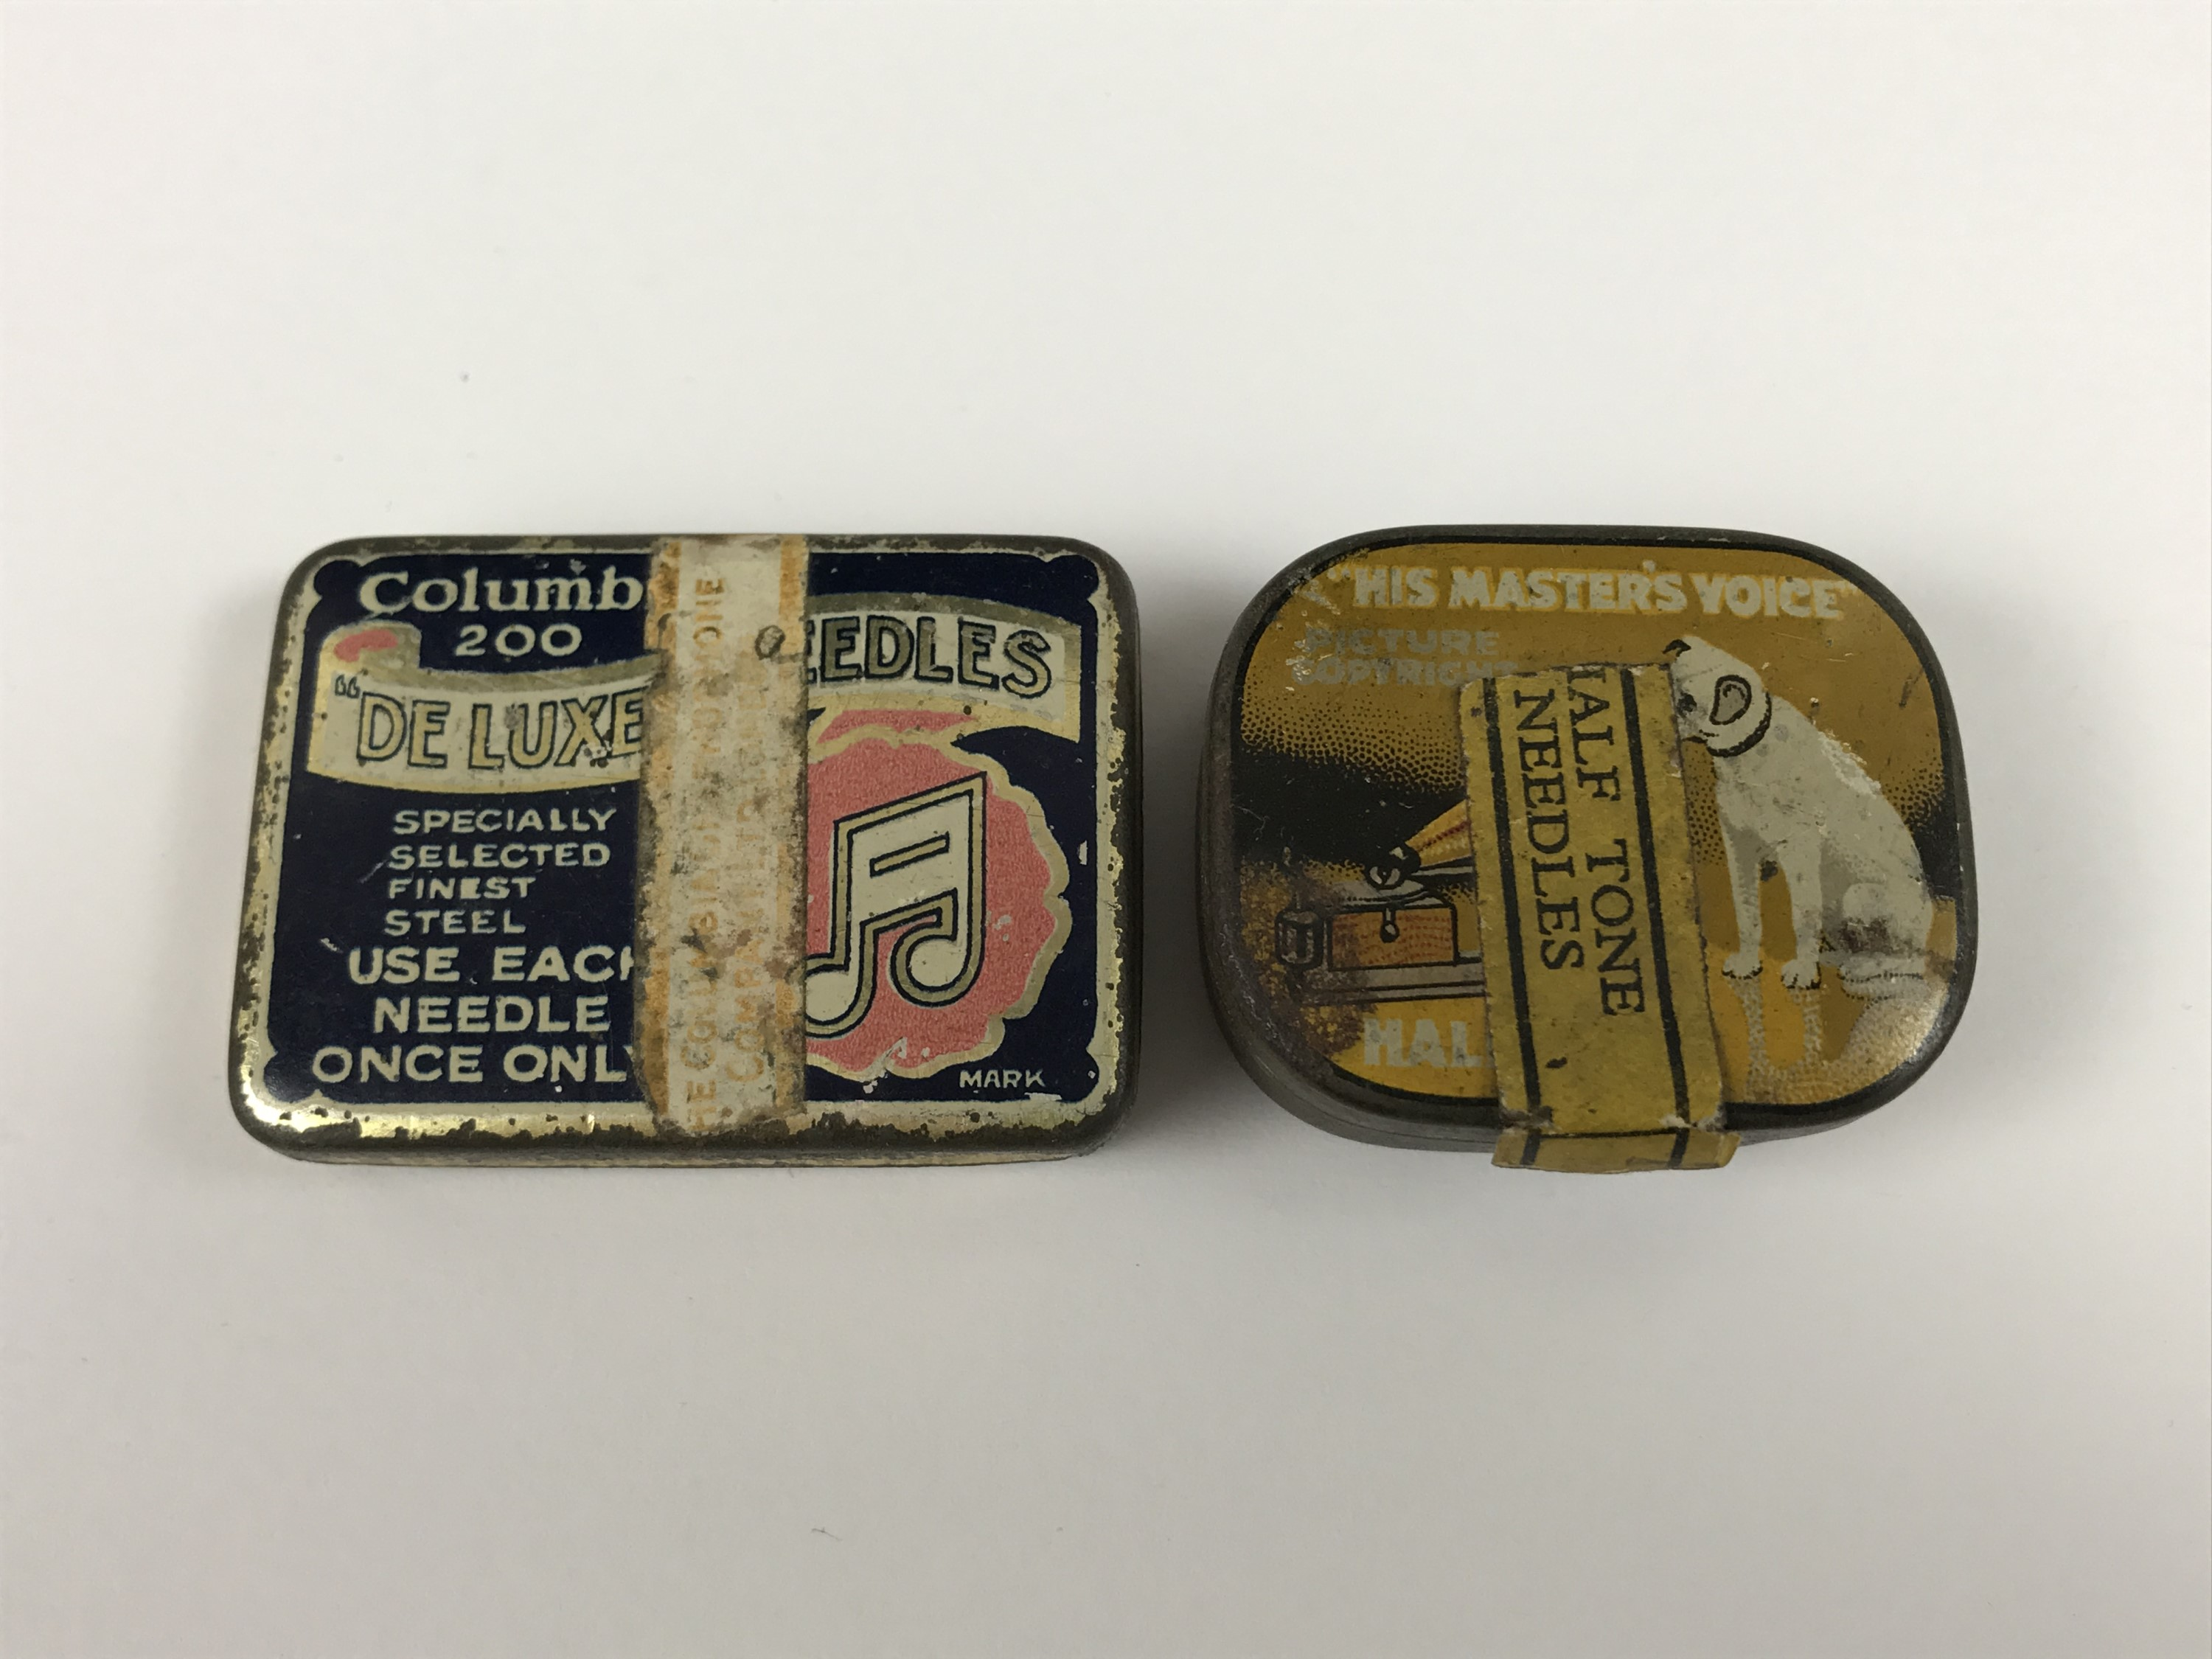 Lot 14 - Columbia 200 de Luxe and His Masters Voice gramophone needles